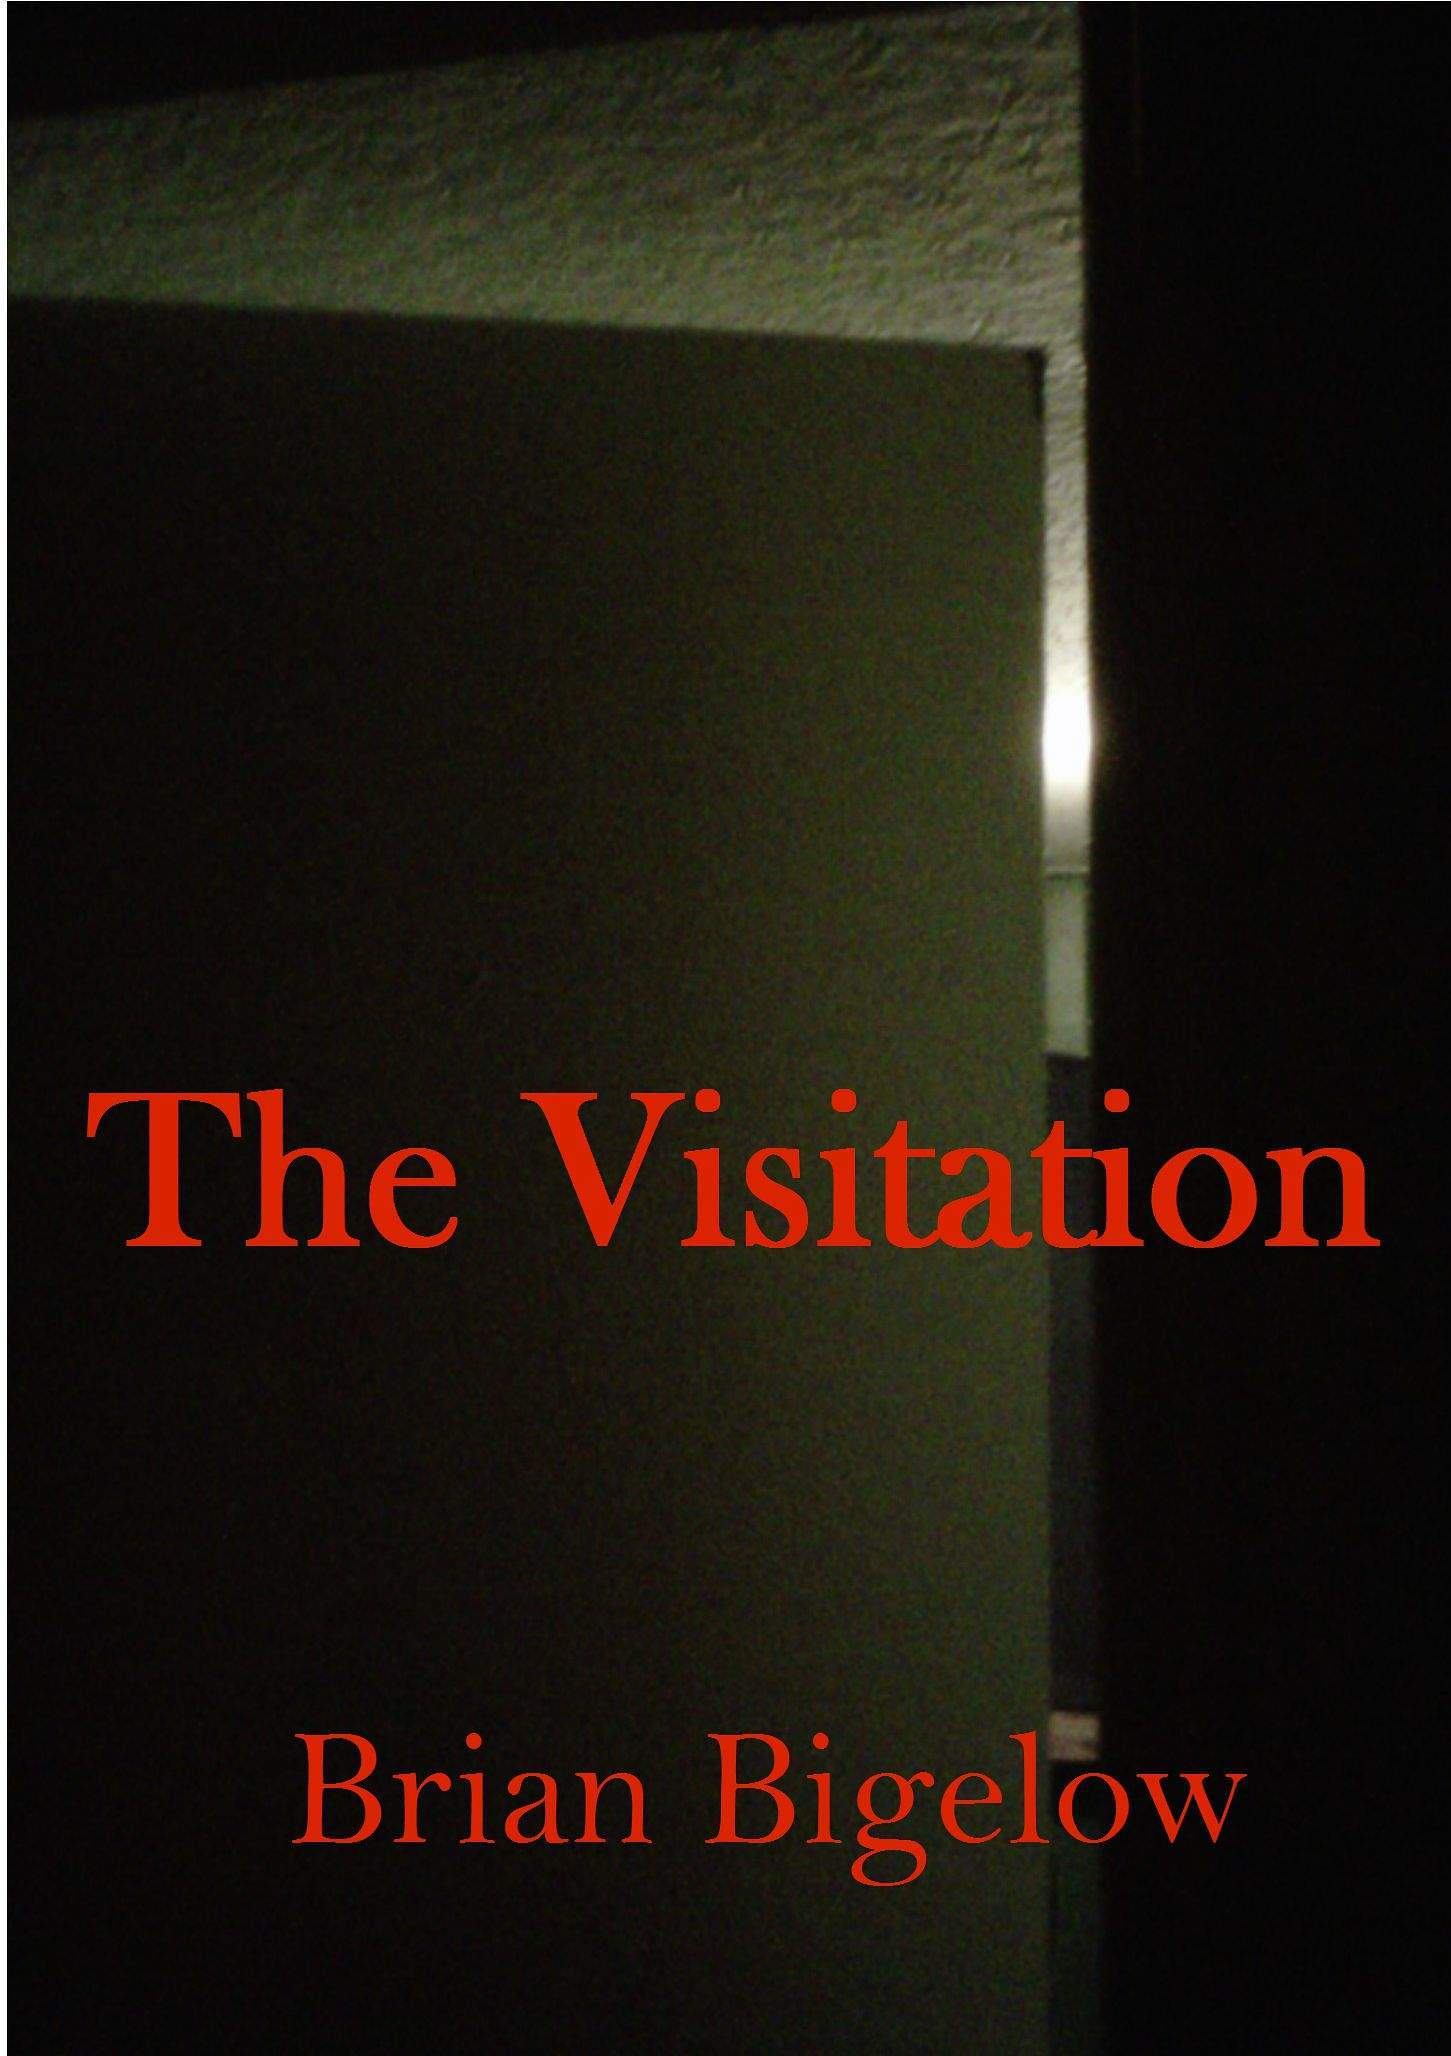 The Visitation by Brian Bigelow